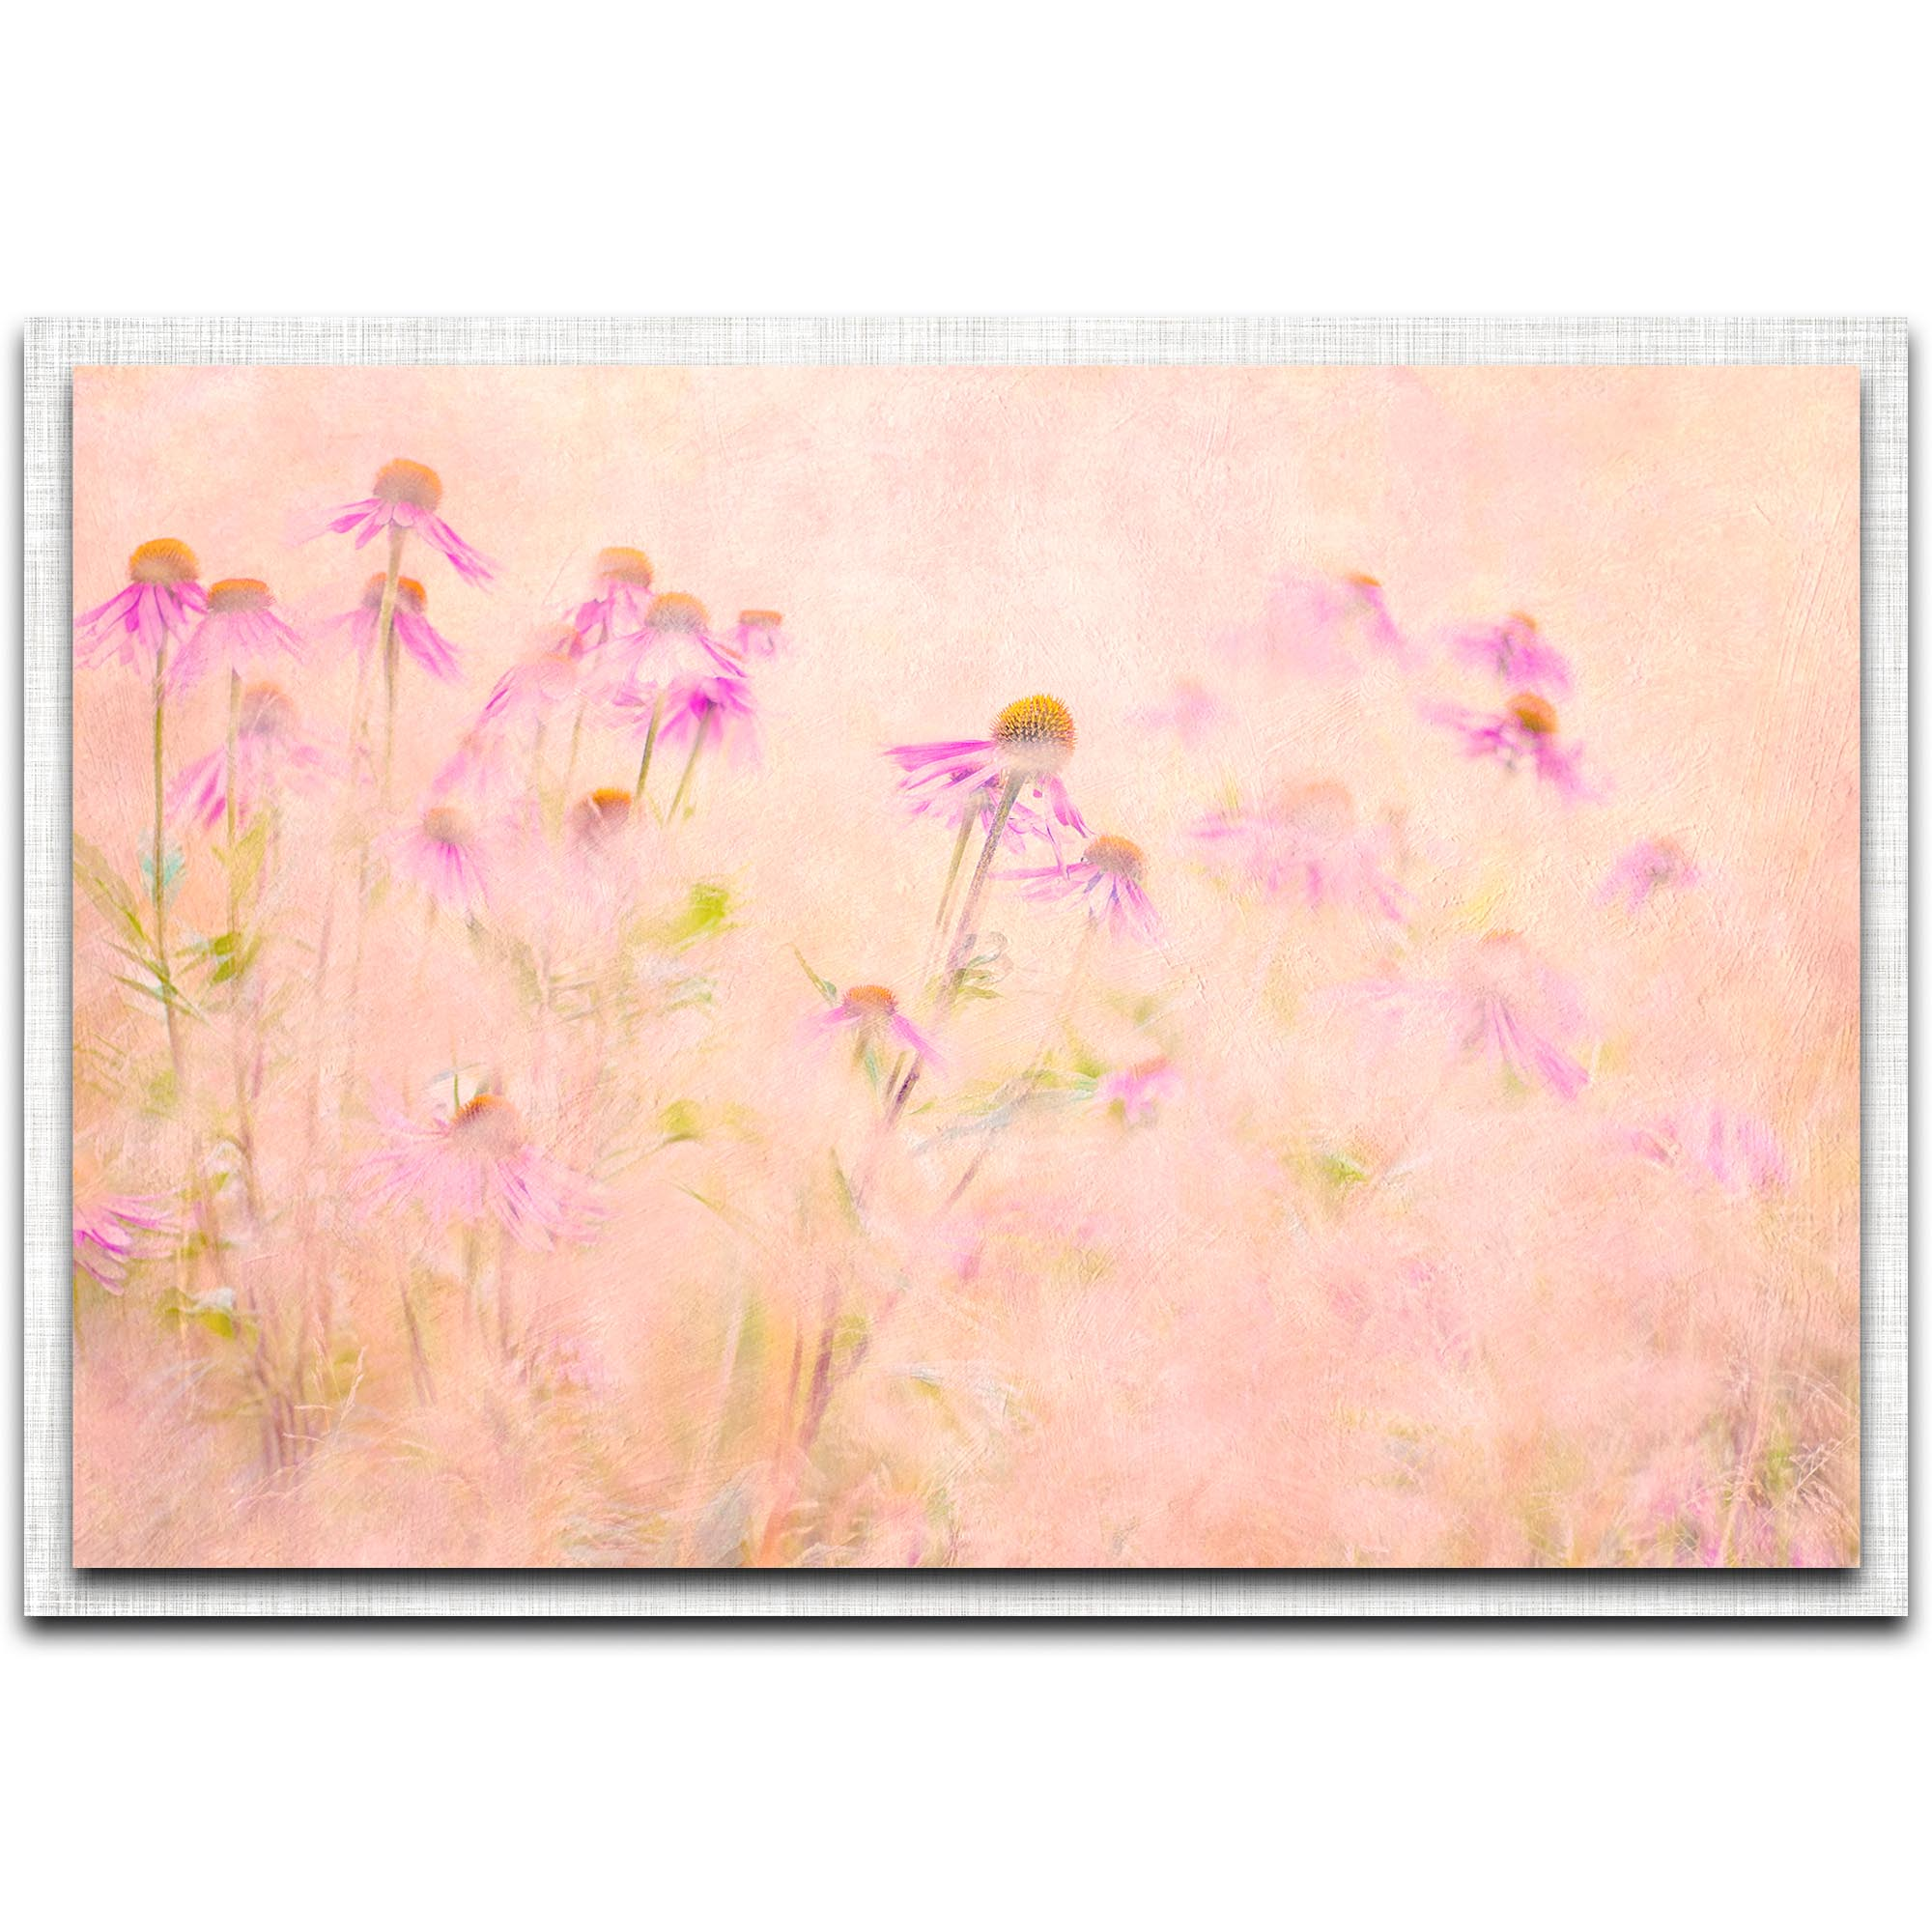 Jacky Parker 'Summertime' 32in x 22in Modern Farmhouse Floral on Metal